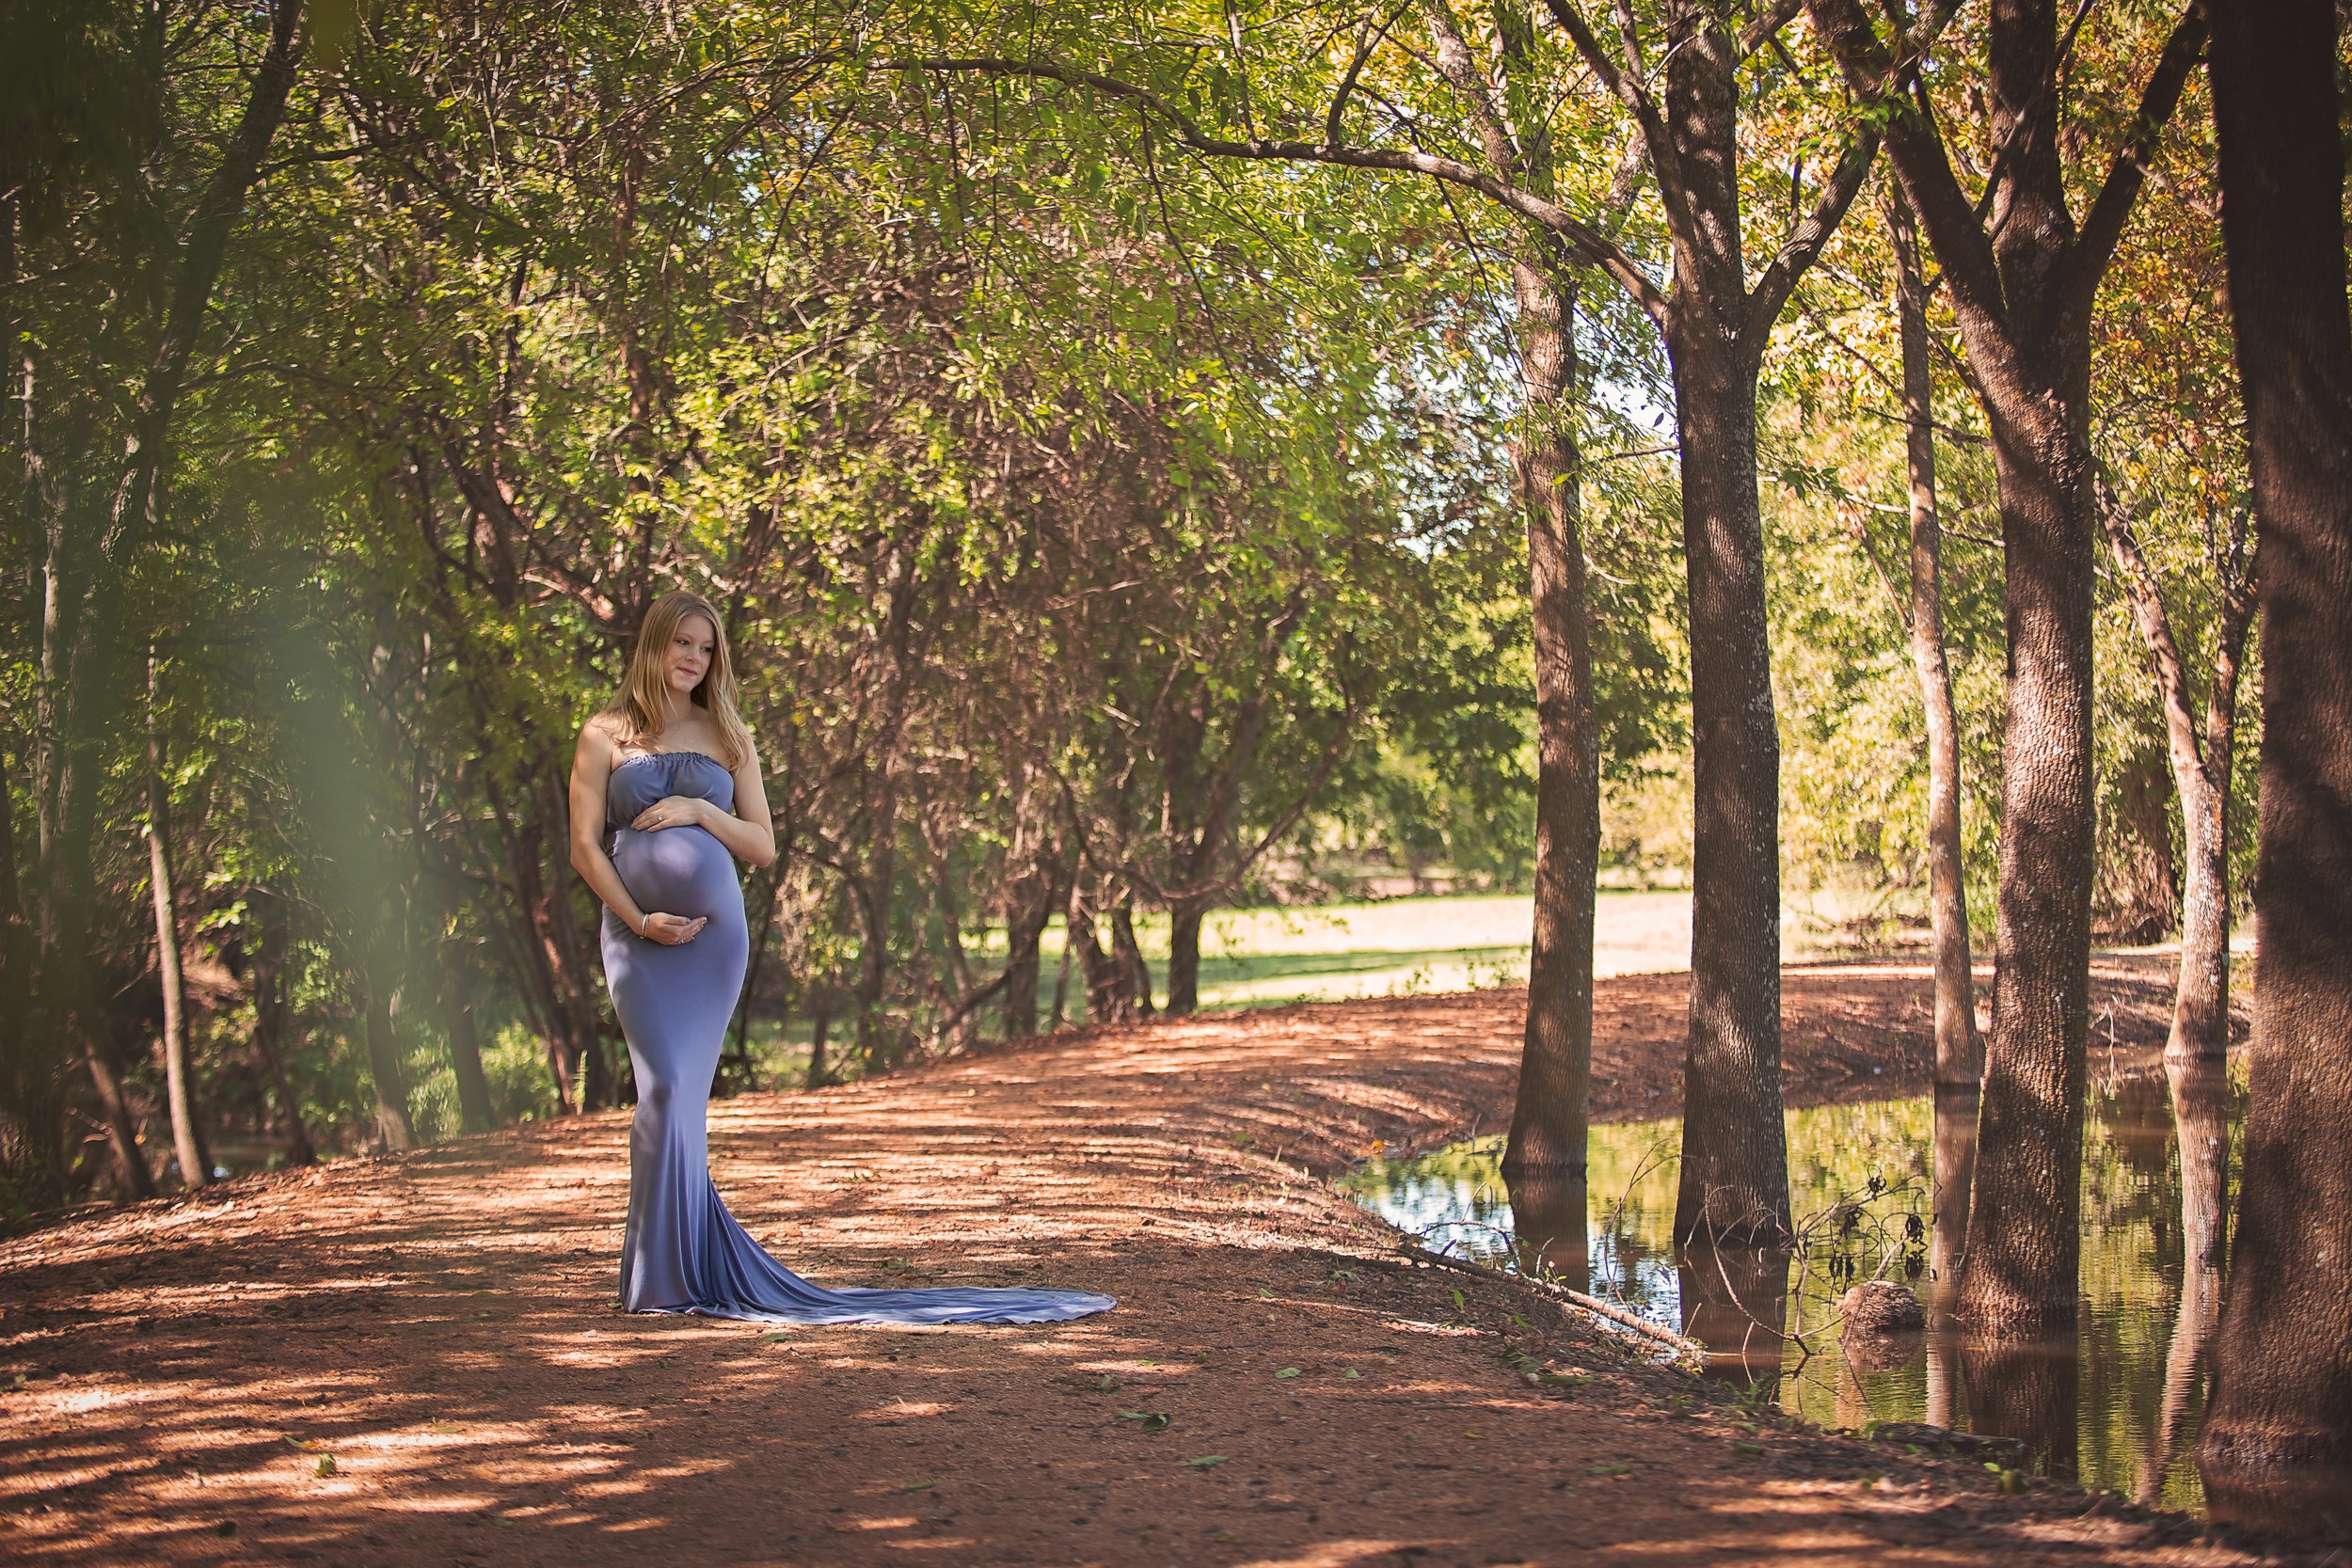 18_10_21 Michelle Baudoin Maternity Session - Parker Rose Garden185.jpg